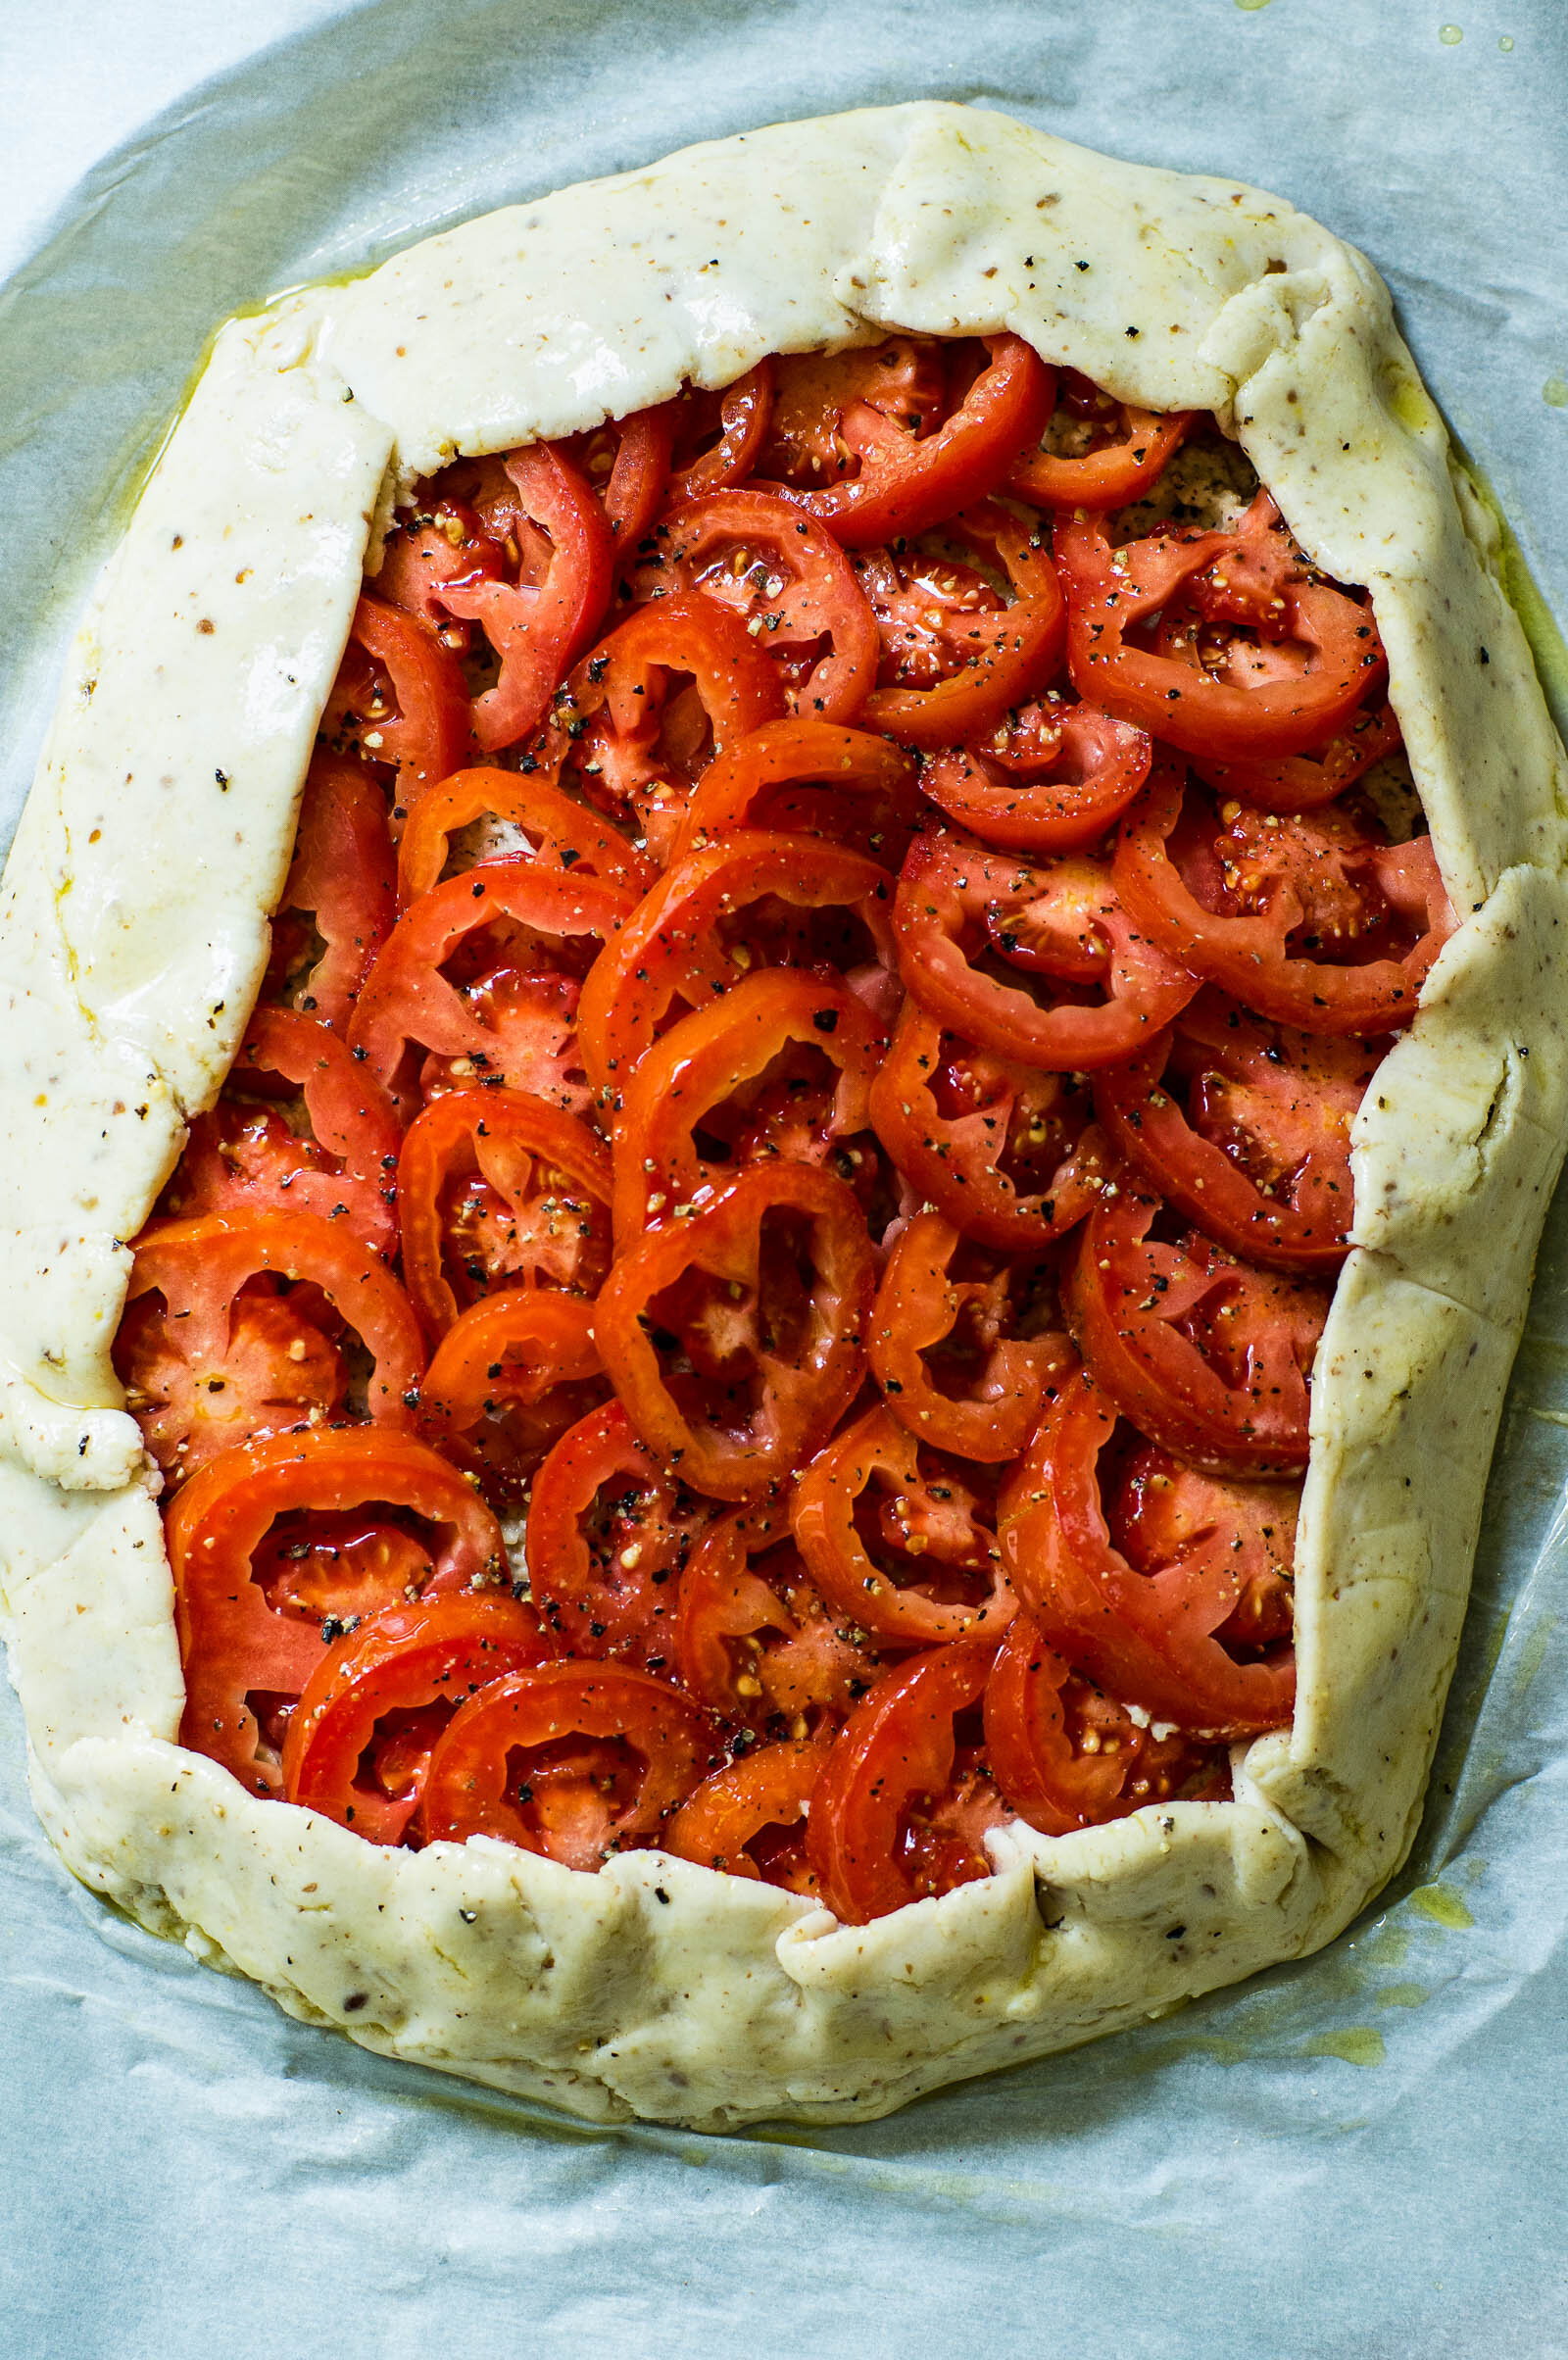 This easy tomato galette features a no-chill crust made Paleo and gluten-free with cassava flour, a quick no-soak vegan cashew garlic herb ricotta, and bold San Marzano tomatoes.